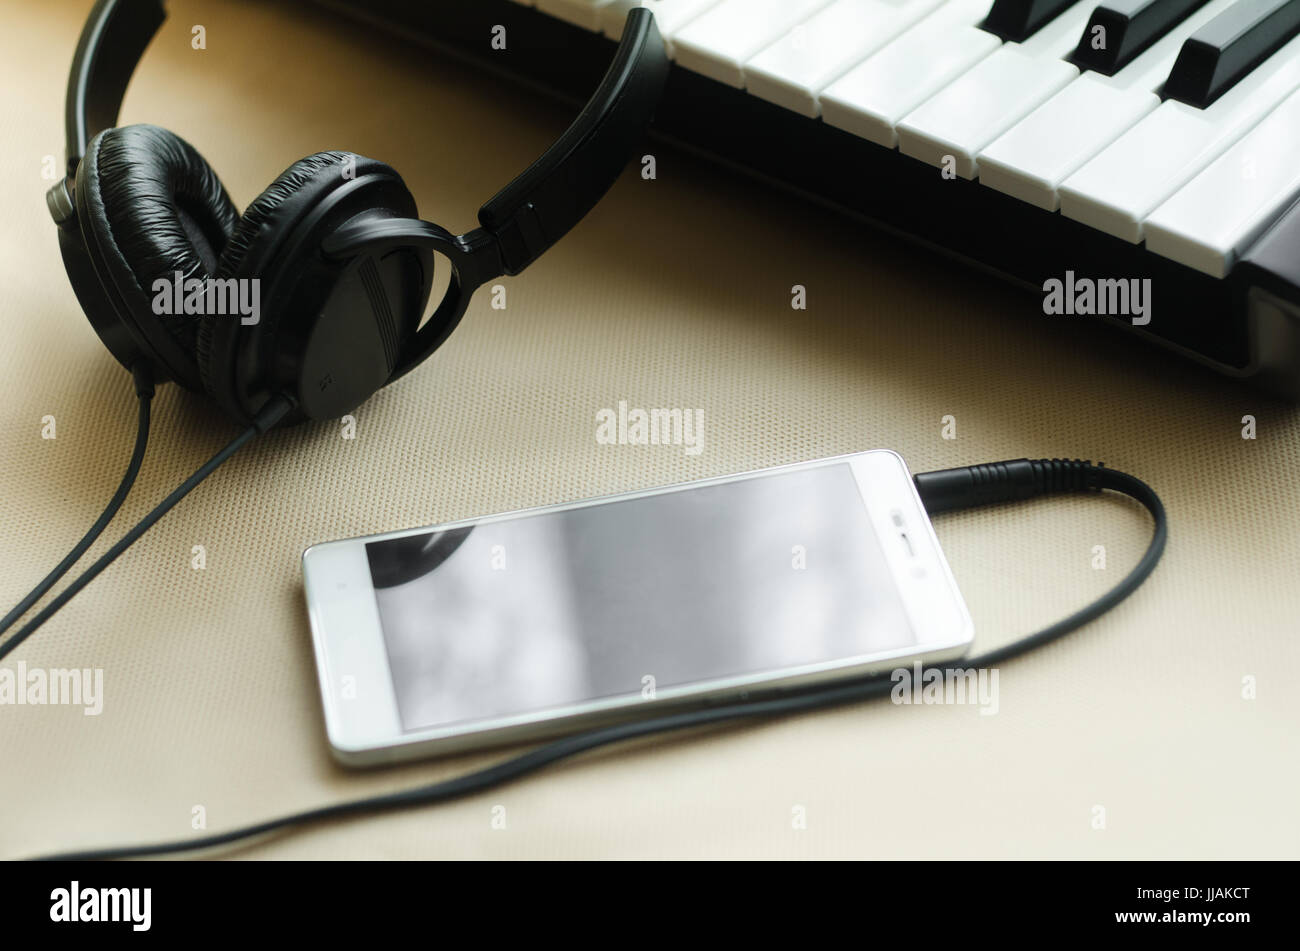 Headphones connected to the phone lying next to synthesizer on a light background. Side view - Stock Image